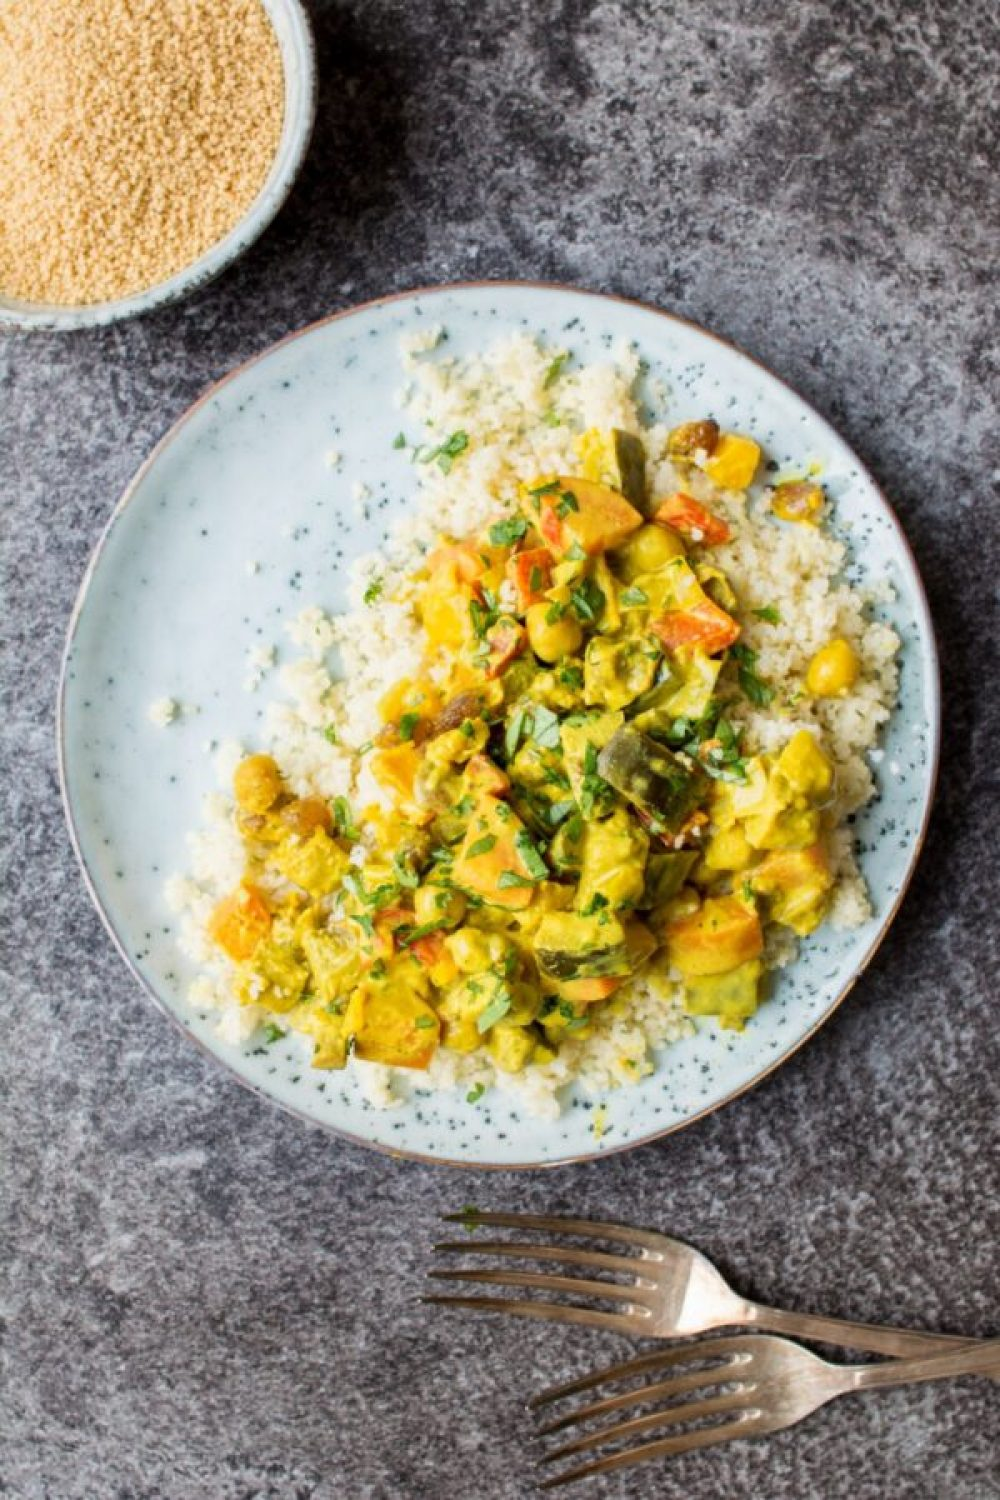 26 Creative and Delicious Turmeric Recipes: Vegetable Curry w/ Turmeric Coconut Sauce